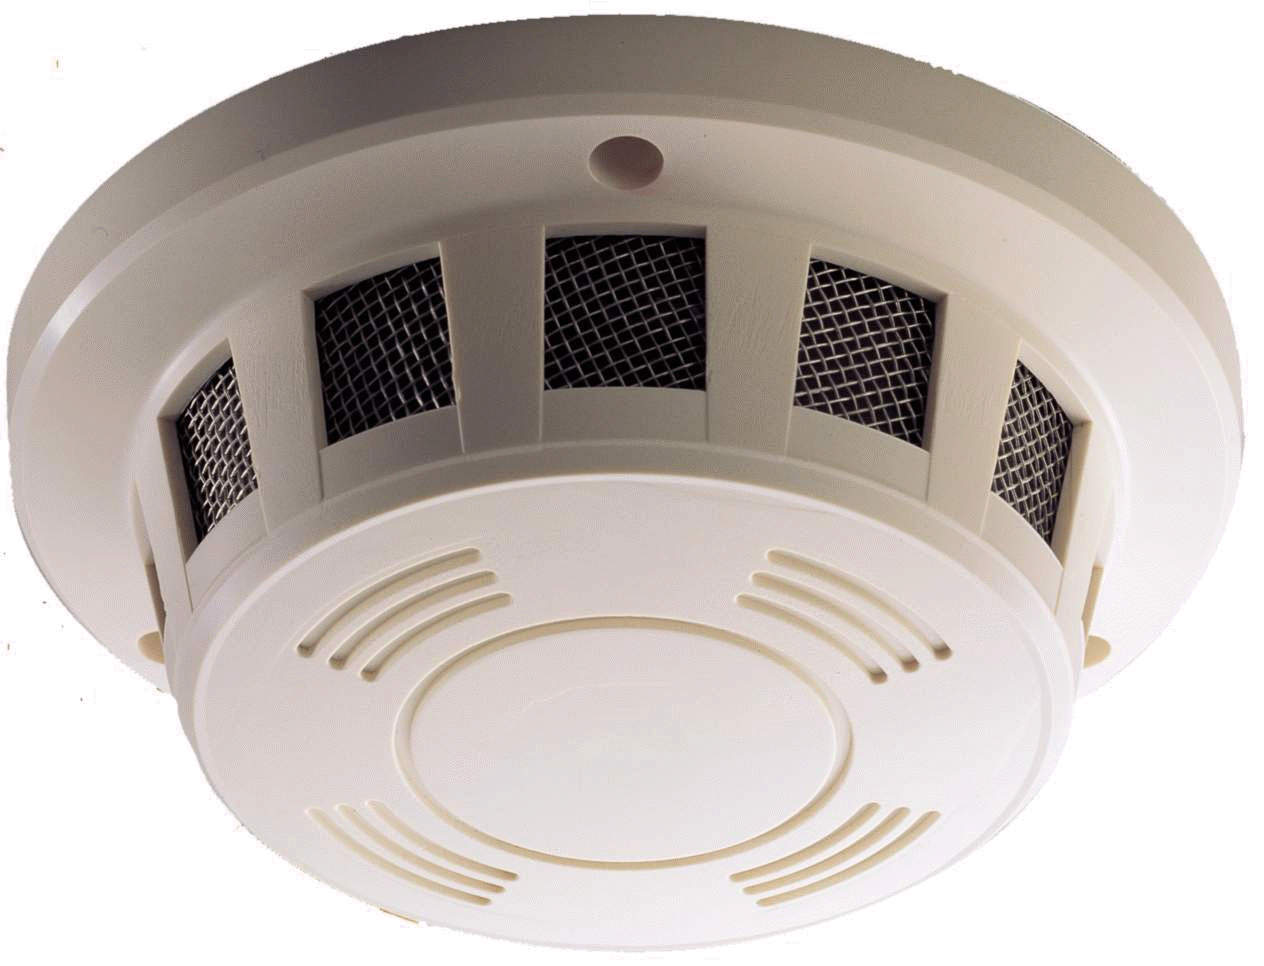 Smoke detector png. Ingraffia home inspections is